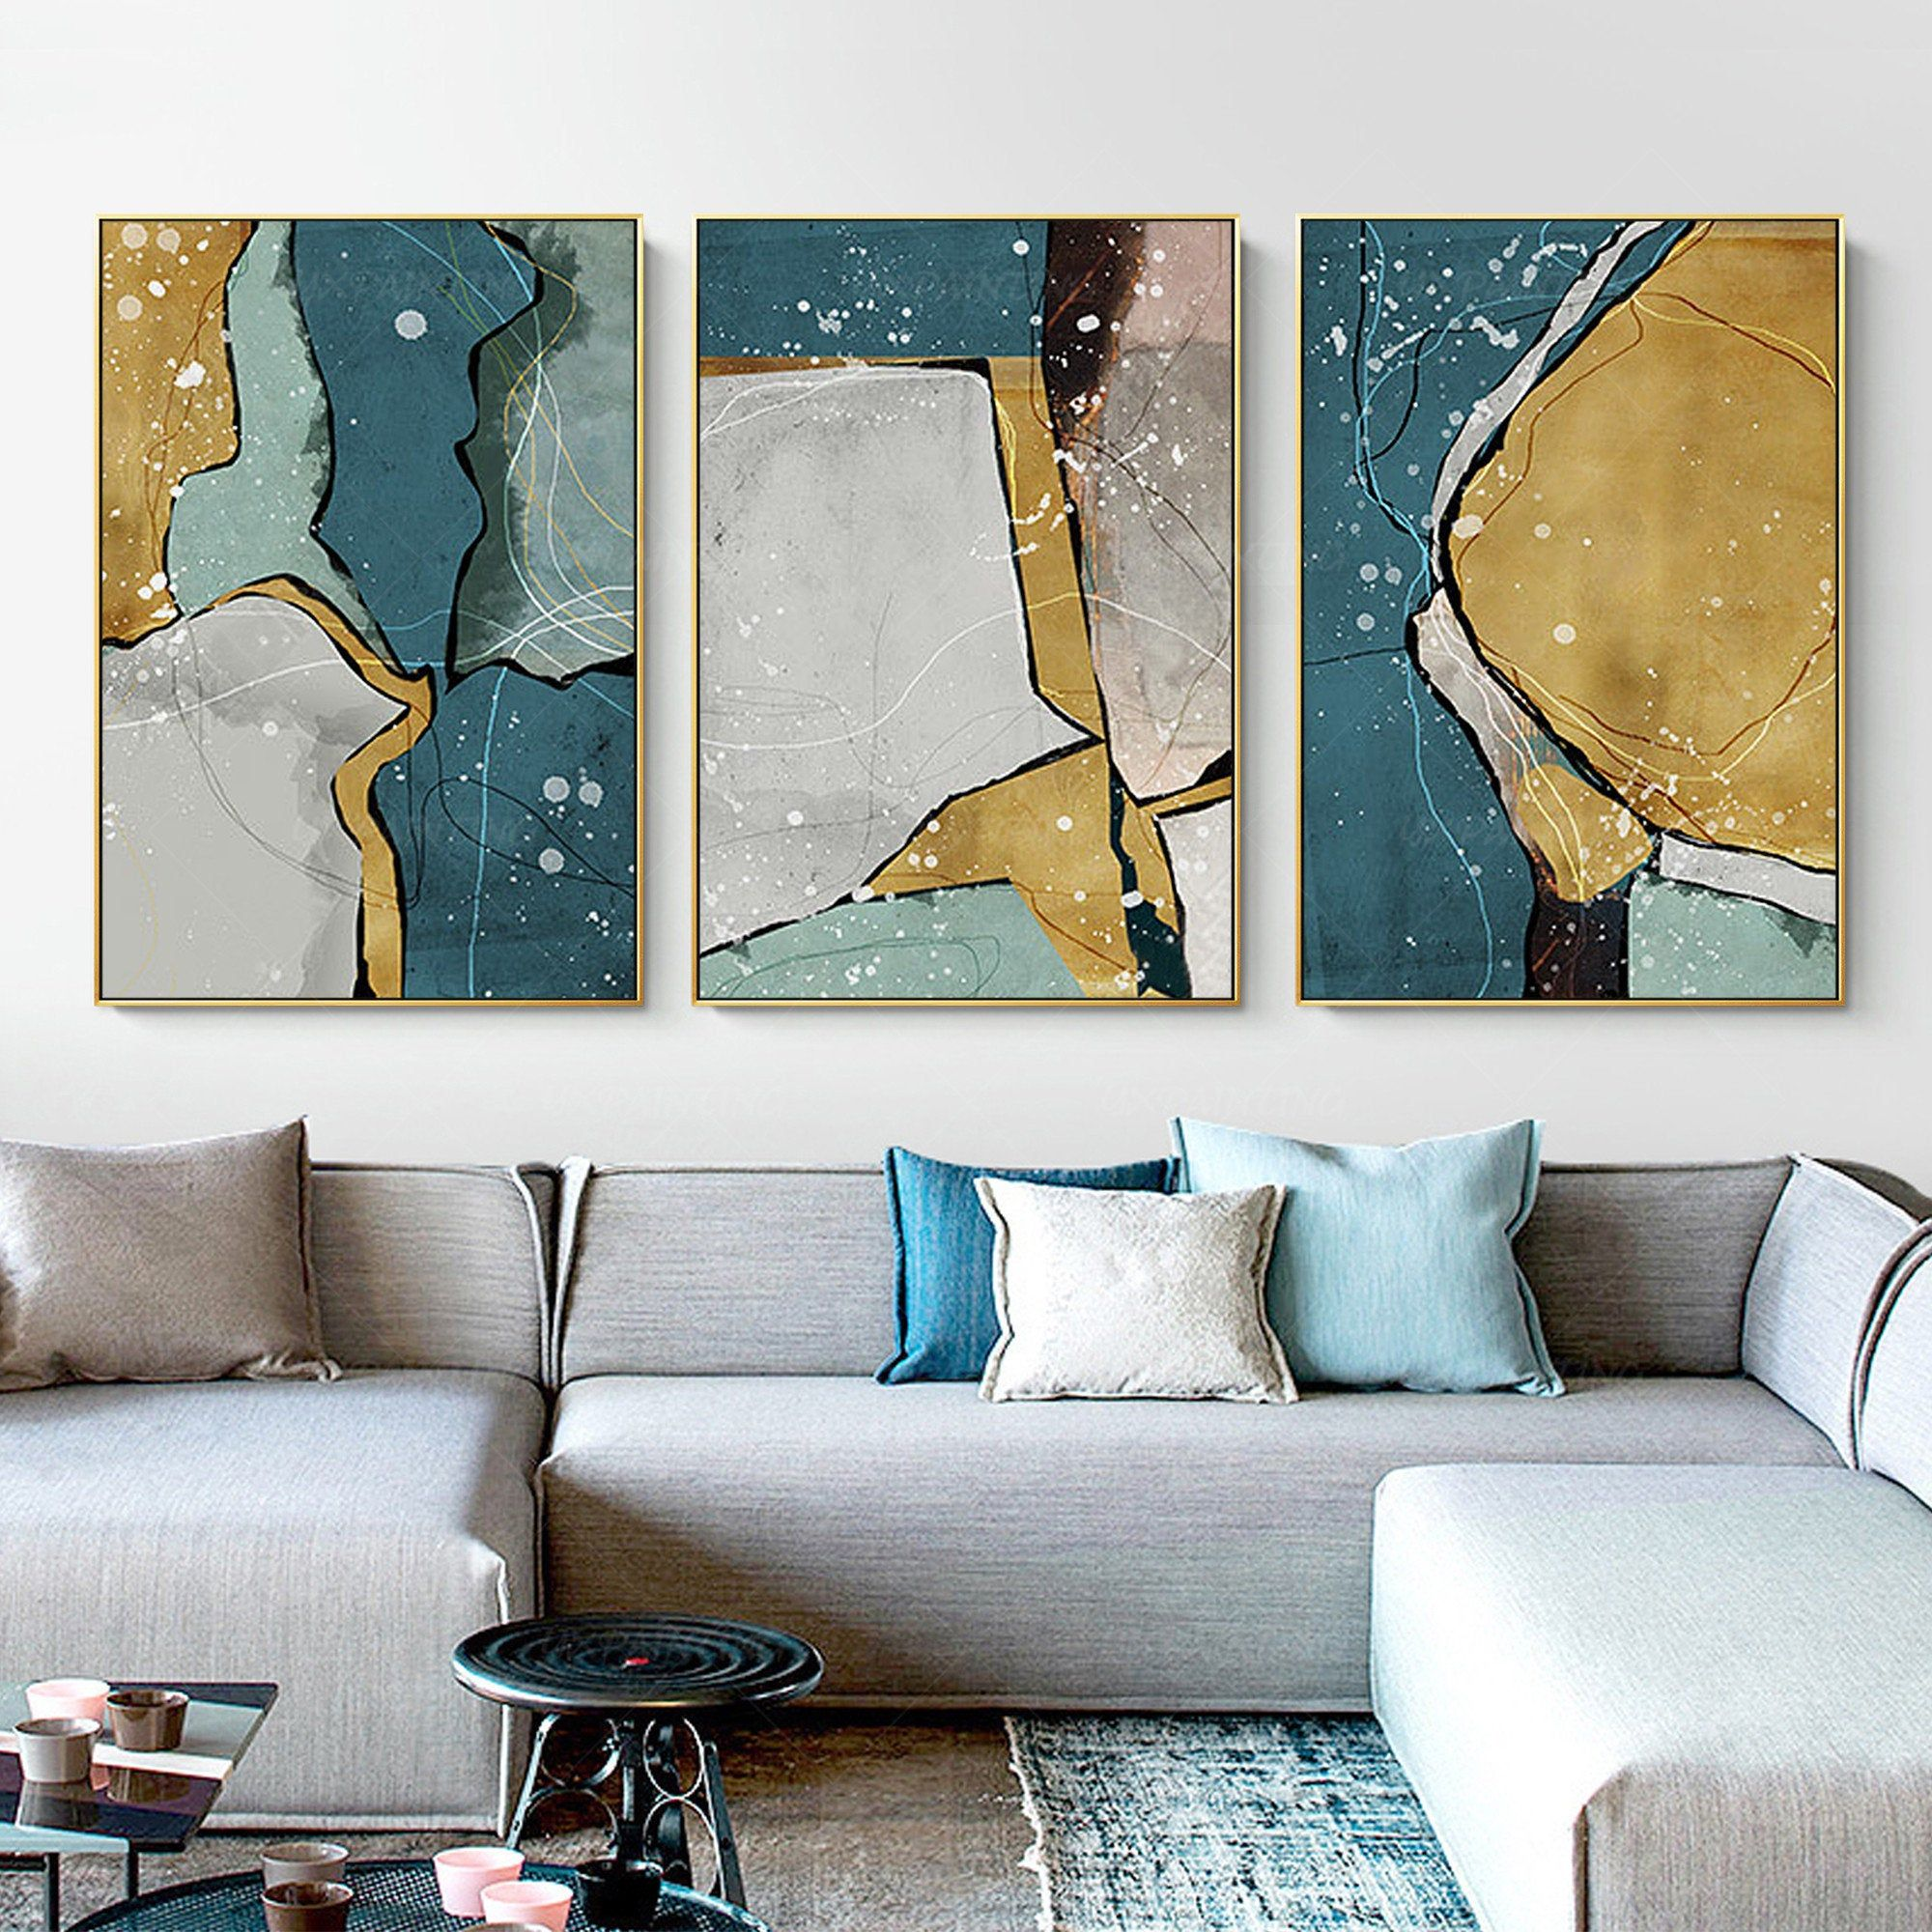 Framed Wall Art Set Of 3 Wall Art Abstract Print Art Blue Etsy In 2020 Framed Wall Art Sets Frames On Wall Framed Wall Art